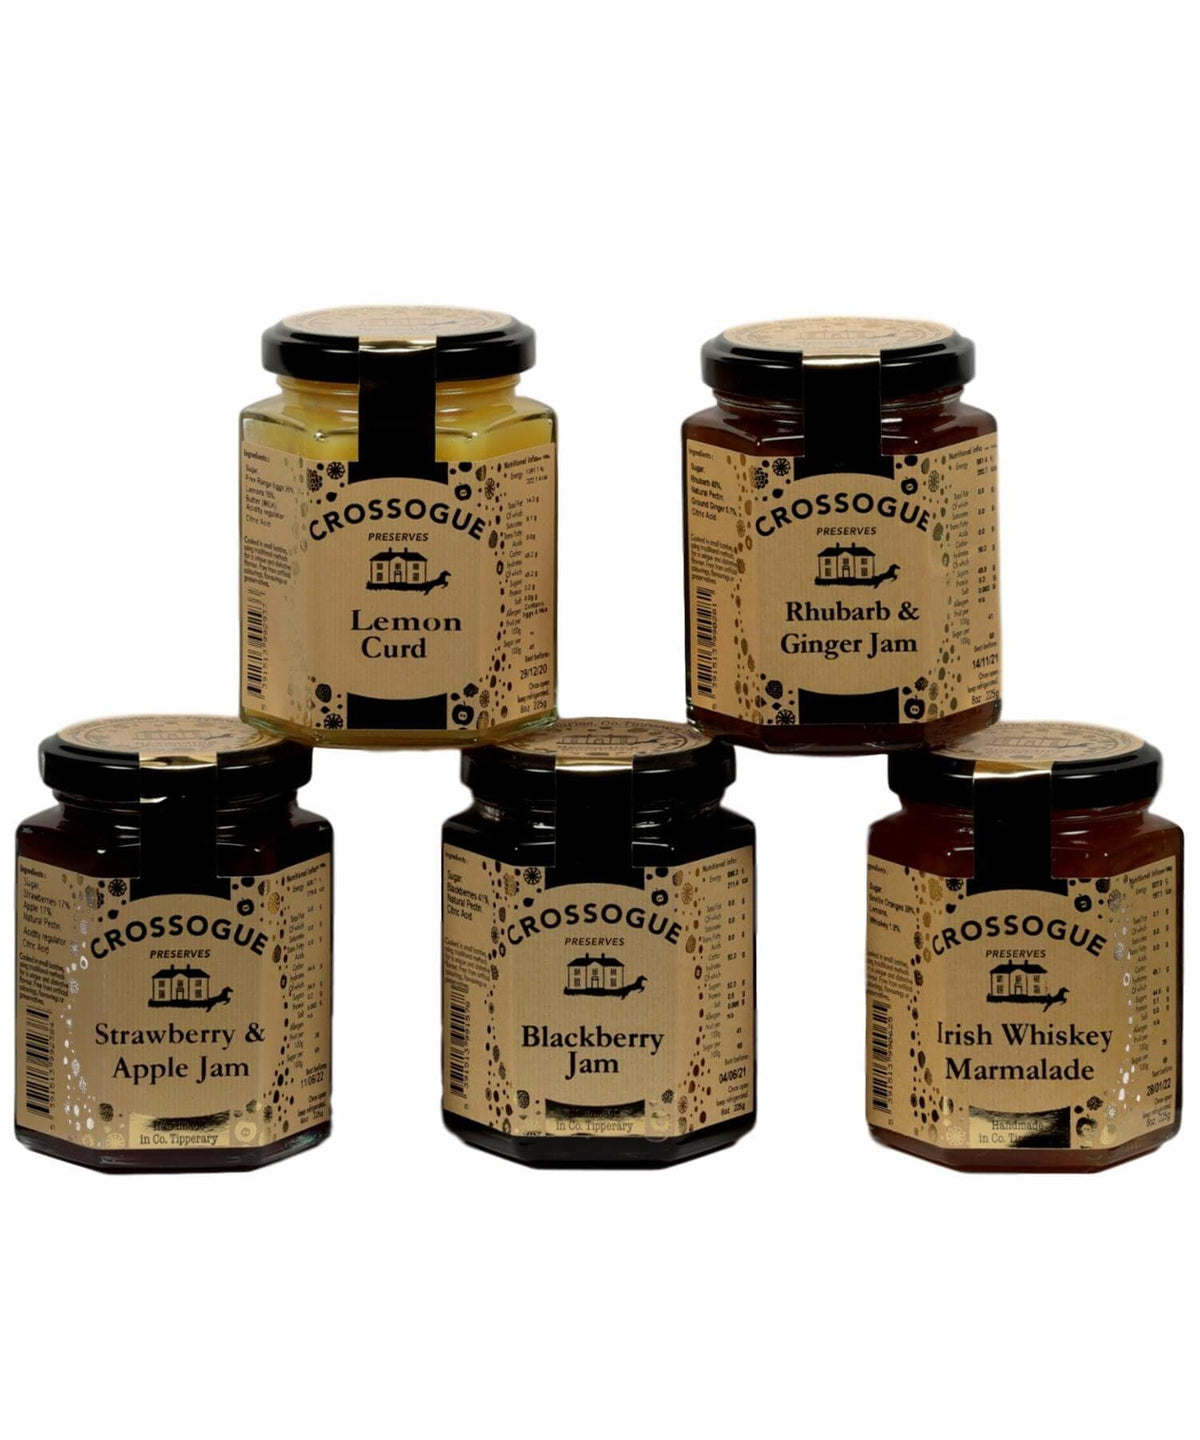 Blackberry Jam Crossogue Food Gifts